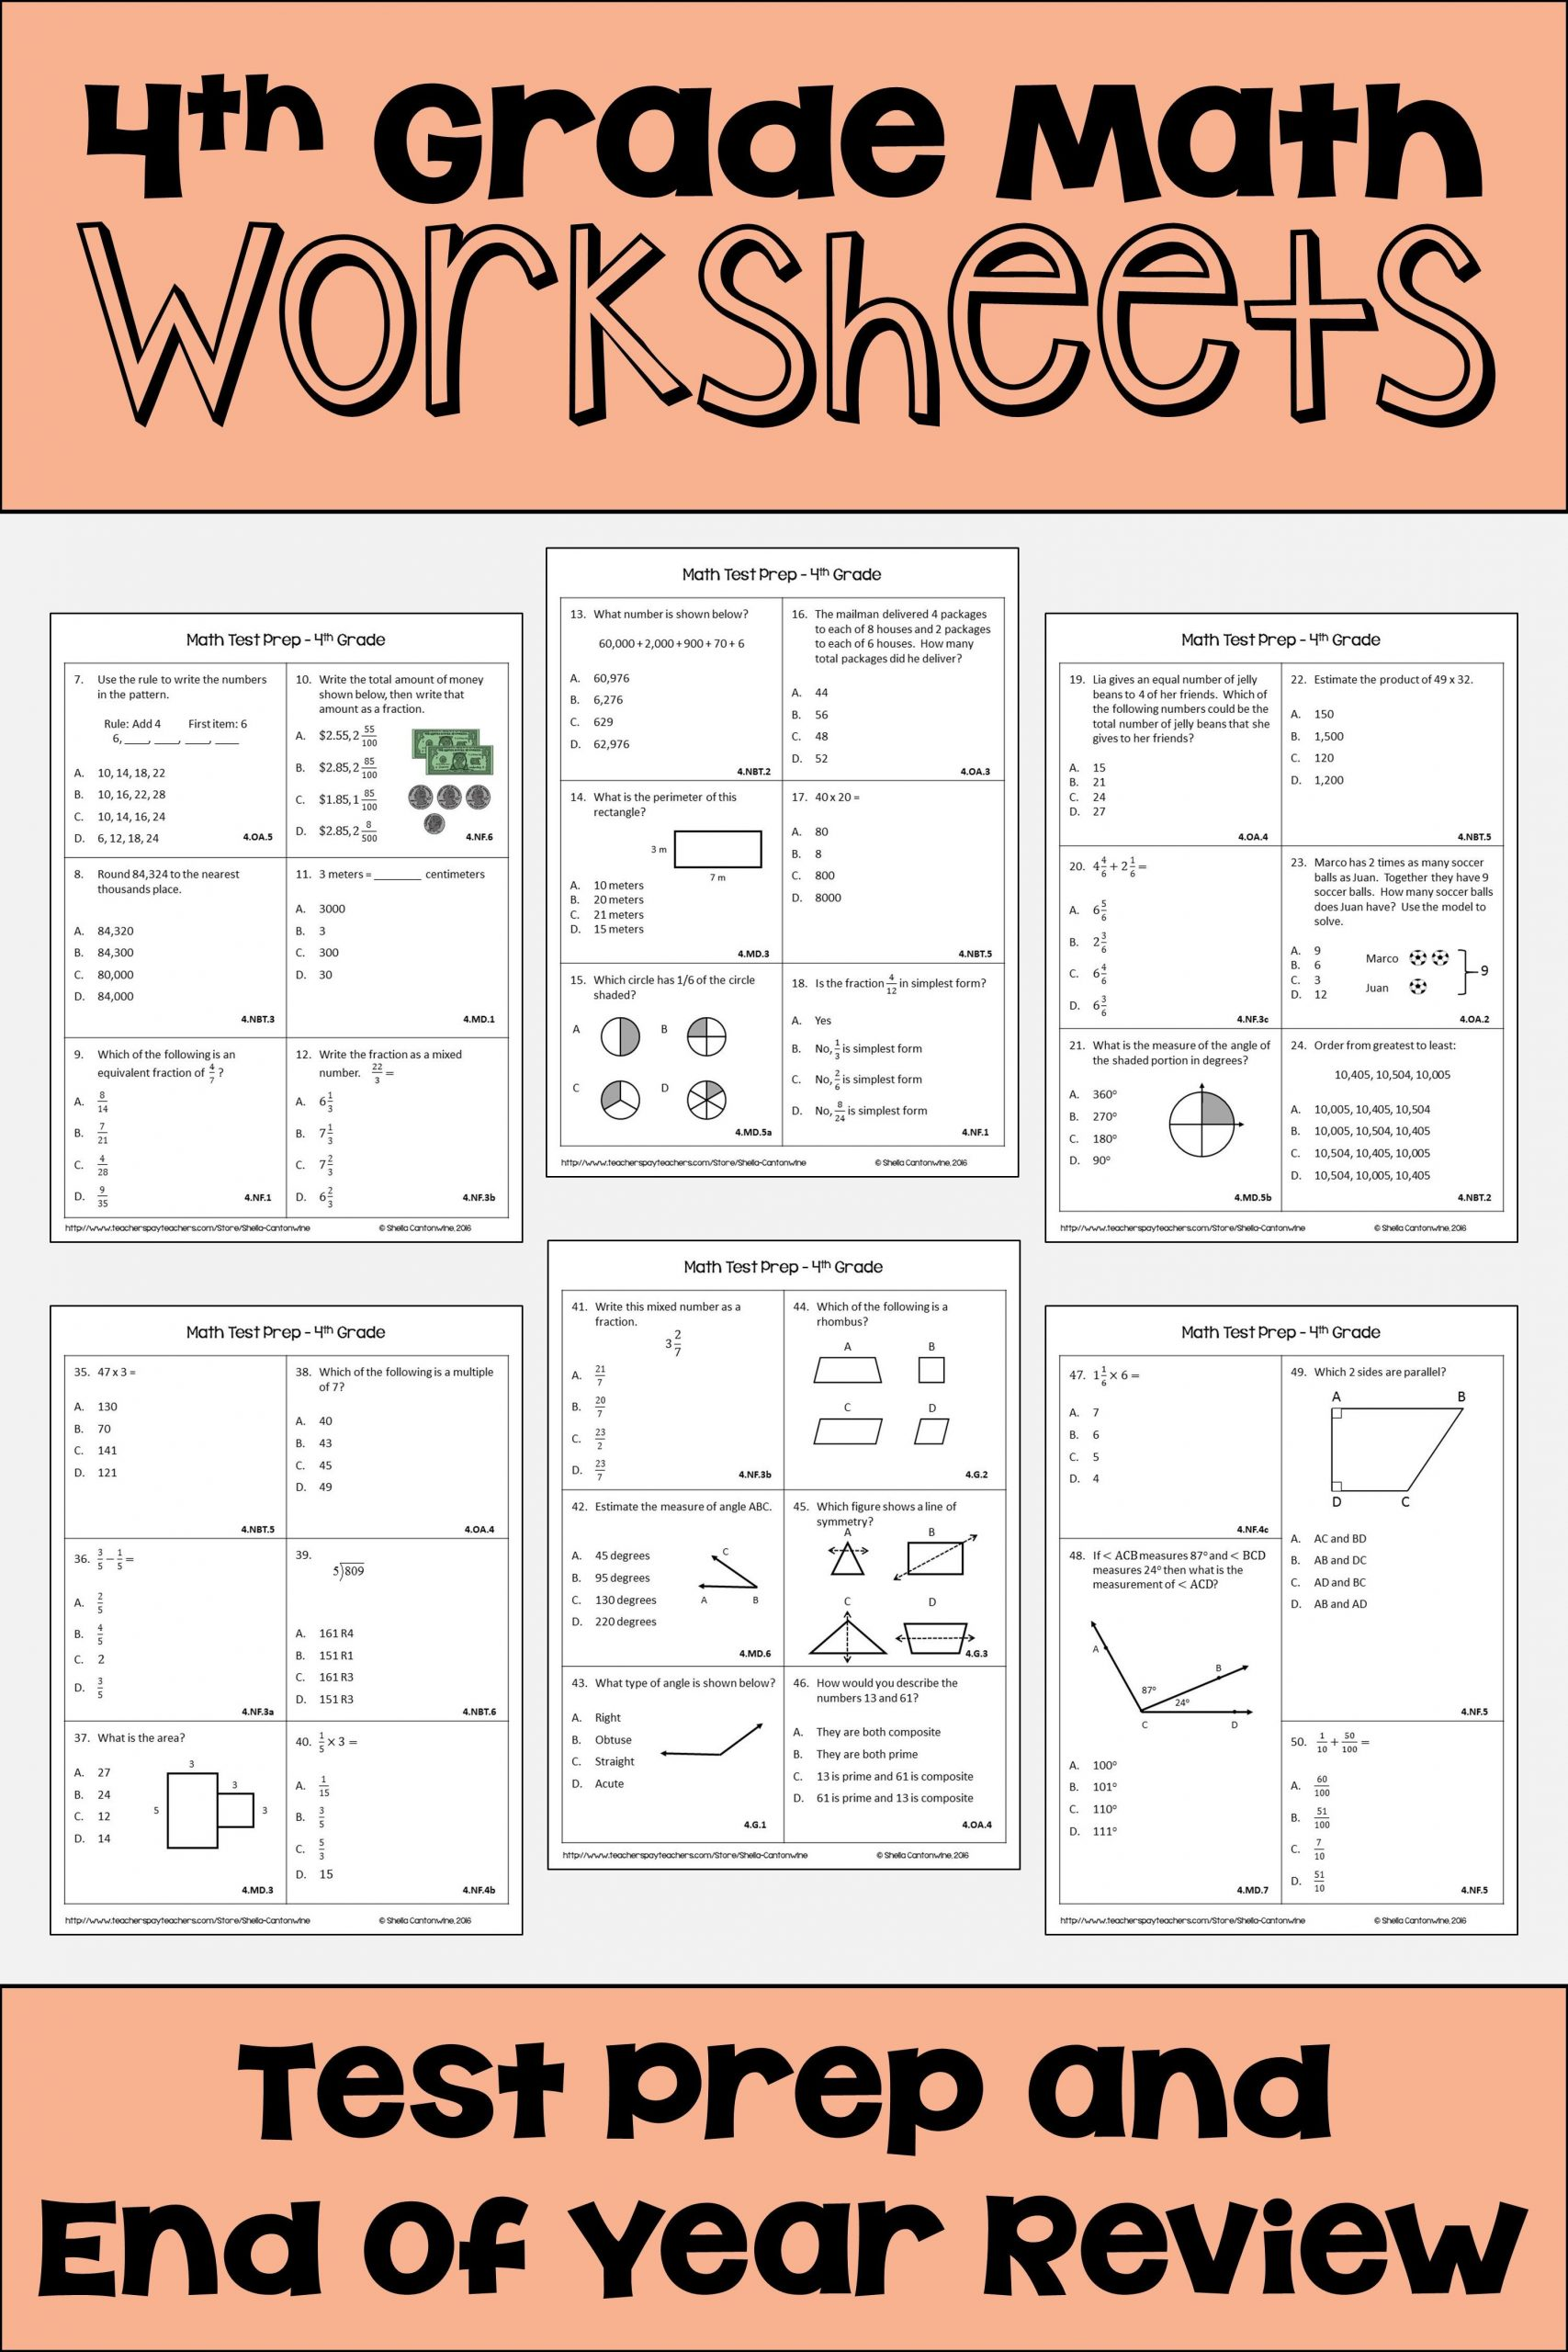 Everyday Math 4th Grade Worksheets these 4th Grade Math Worksheets are Fun for Students and